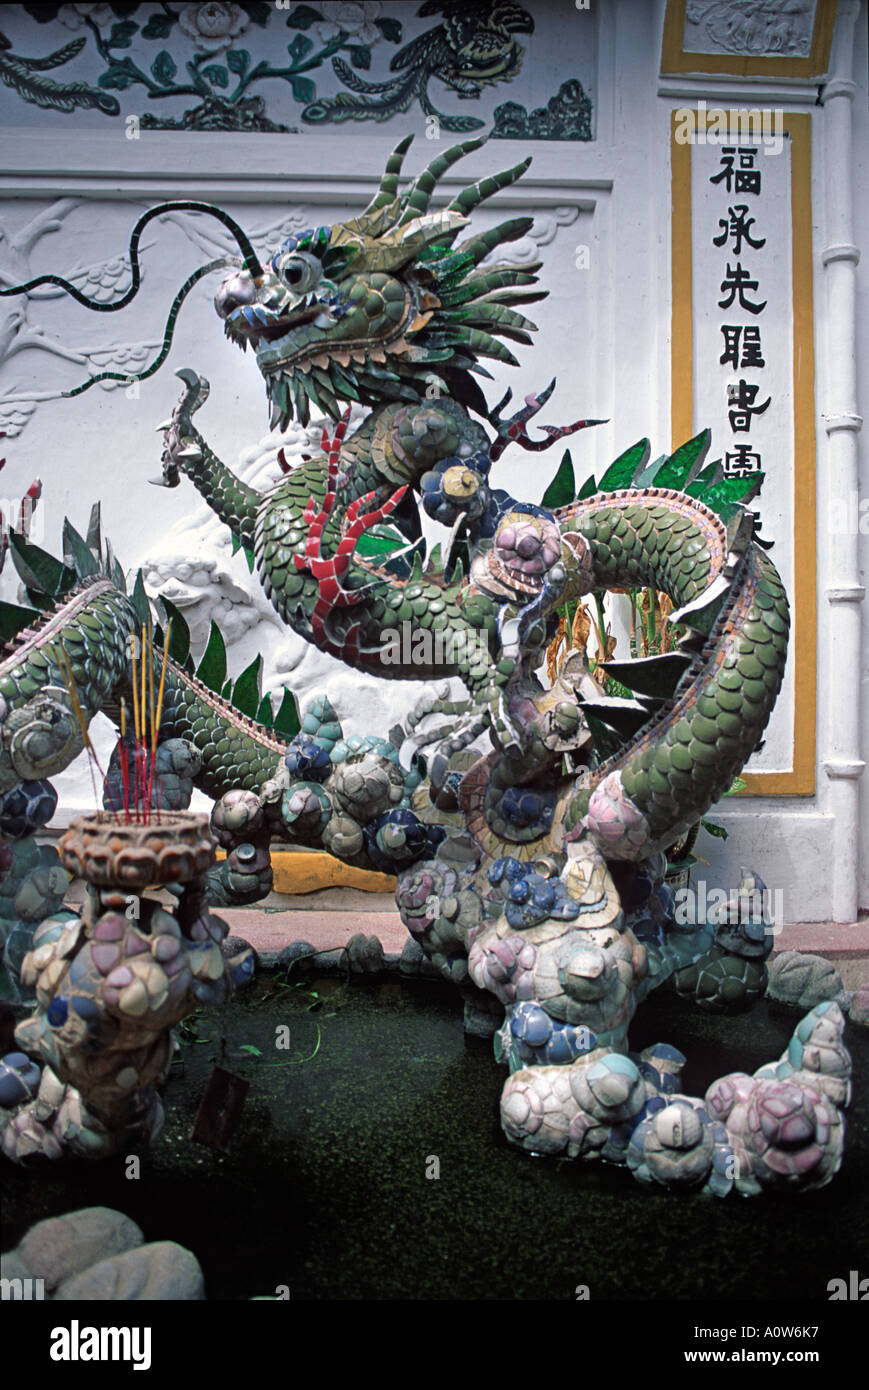 Ornate serpent dragon sculture at the Cantonese Assembly Hall Hoi An Vietnam - Stock Image